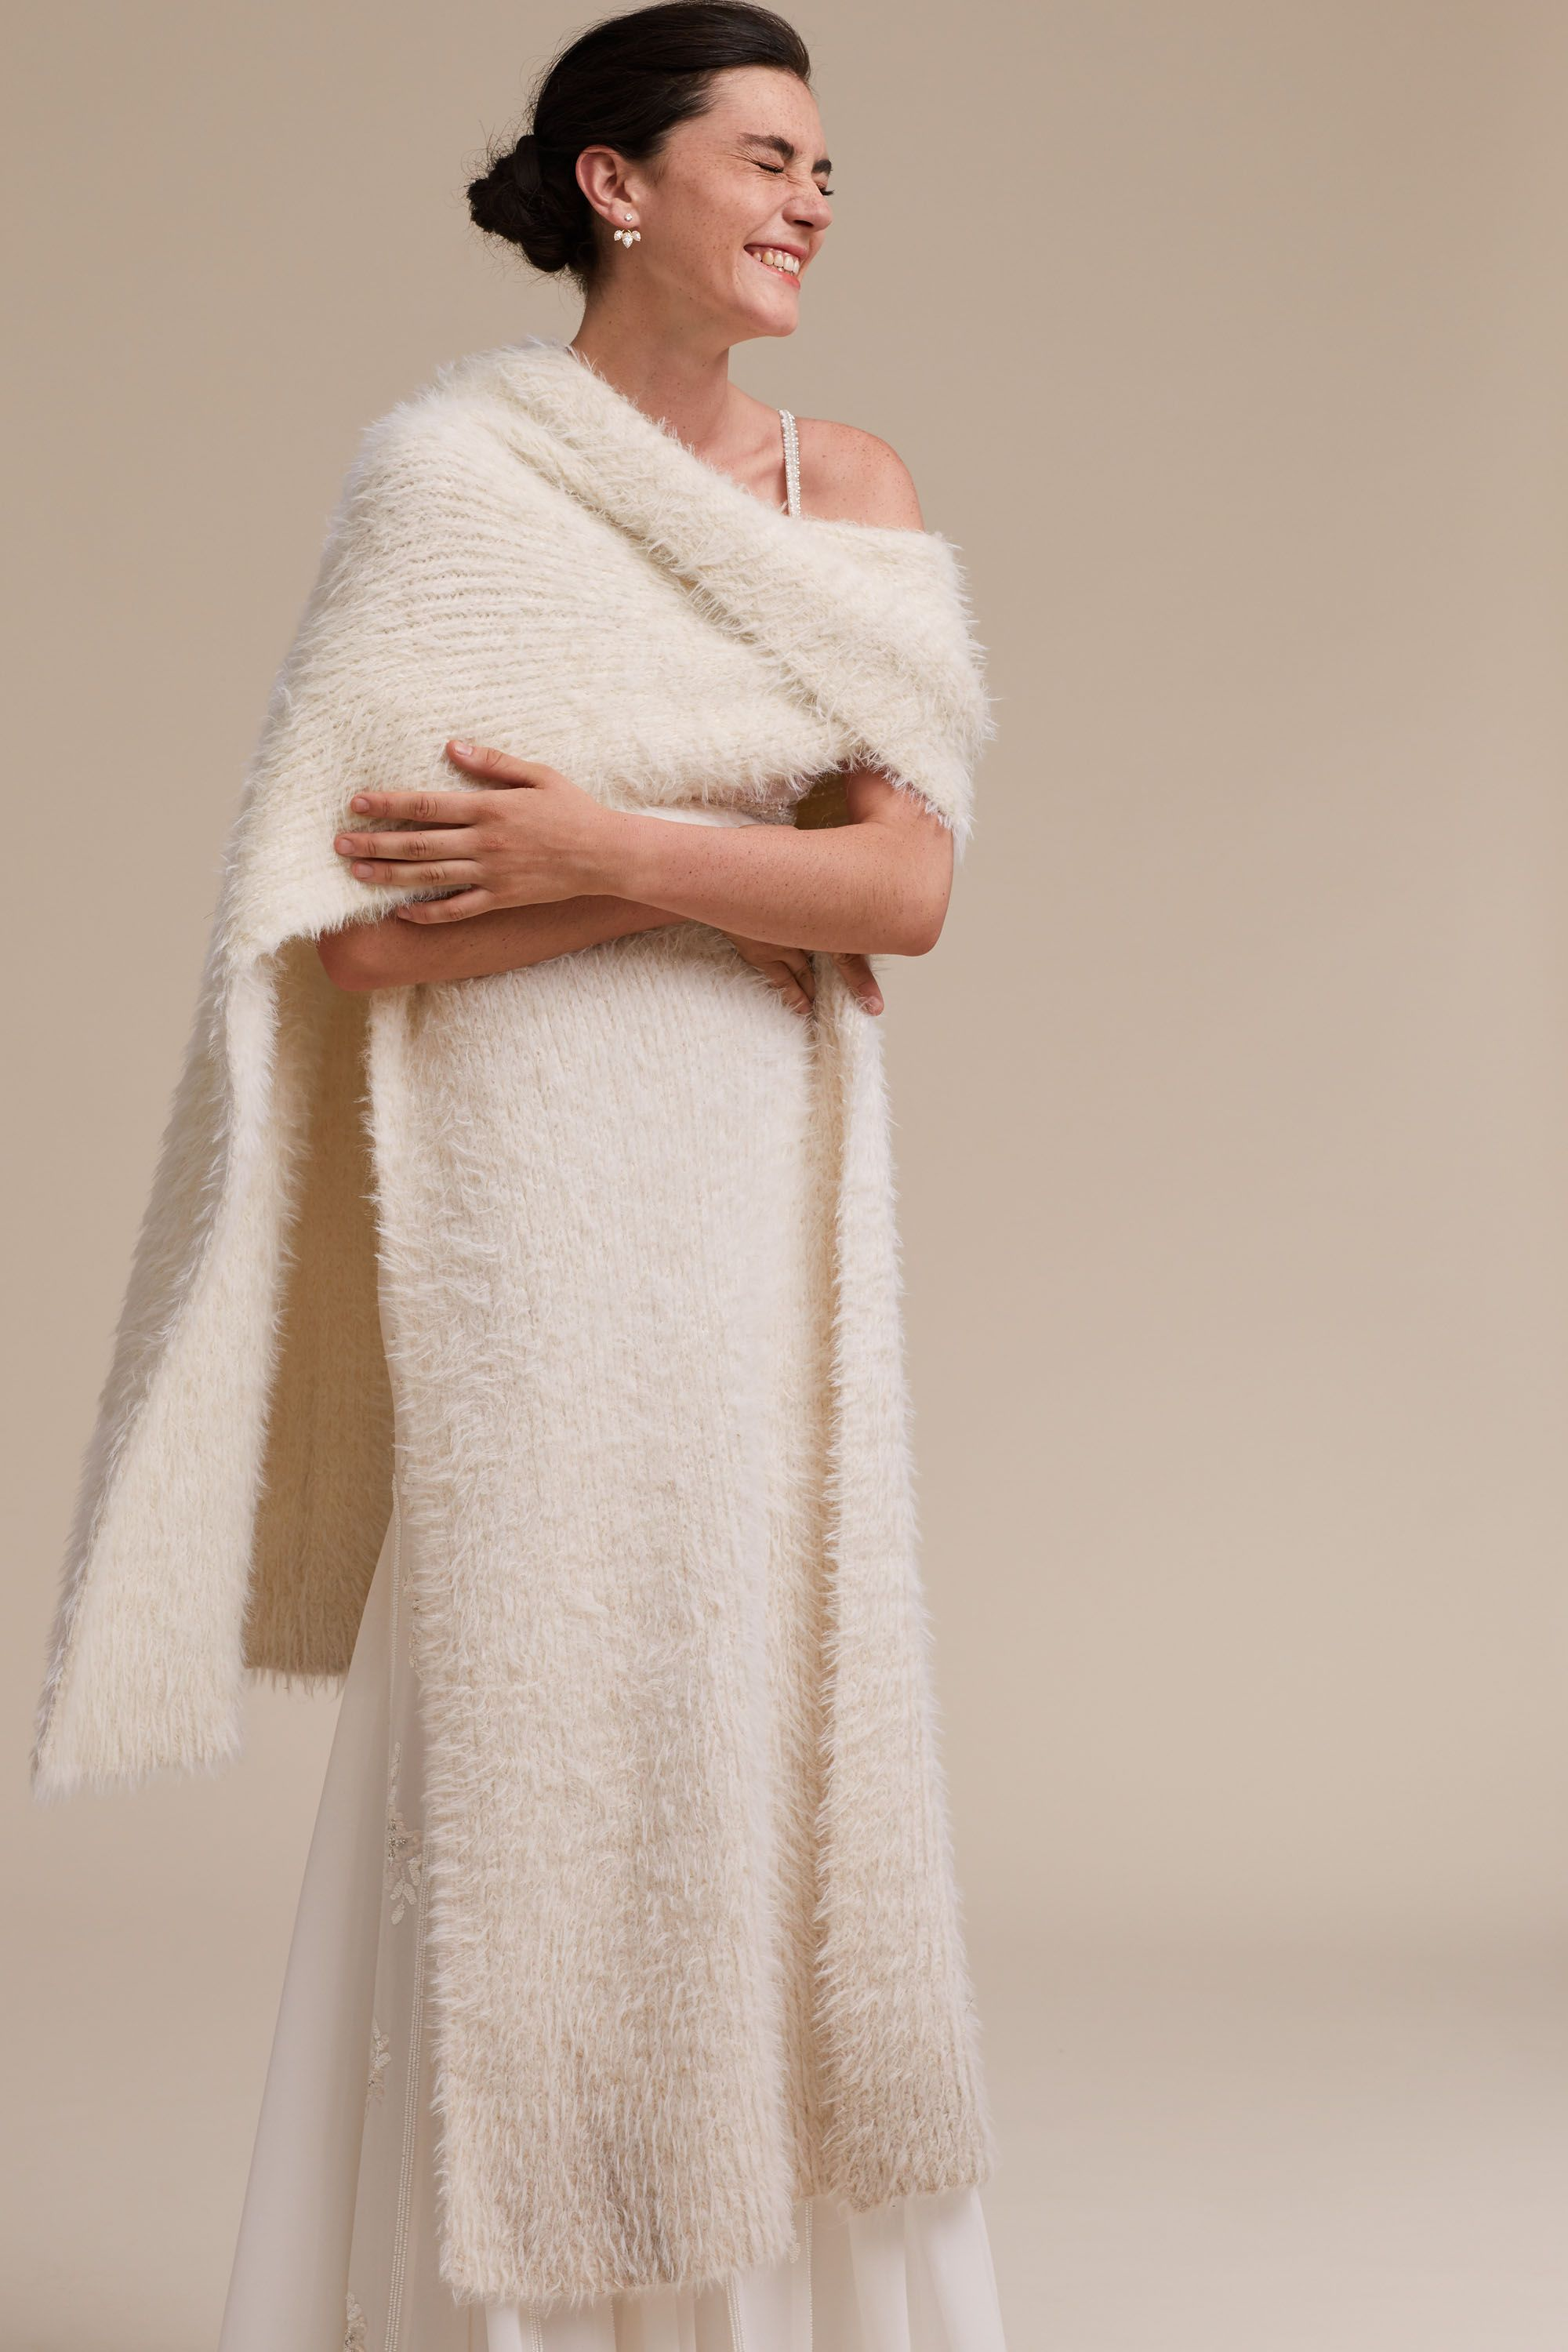 Revere Sweater Wrap From Bhldn Wedding Sweater Winter Wedding Attire Winter Wedding Accessories